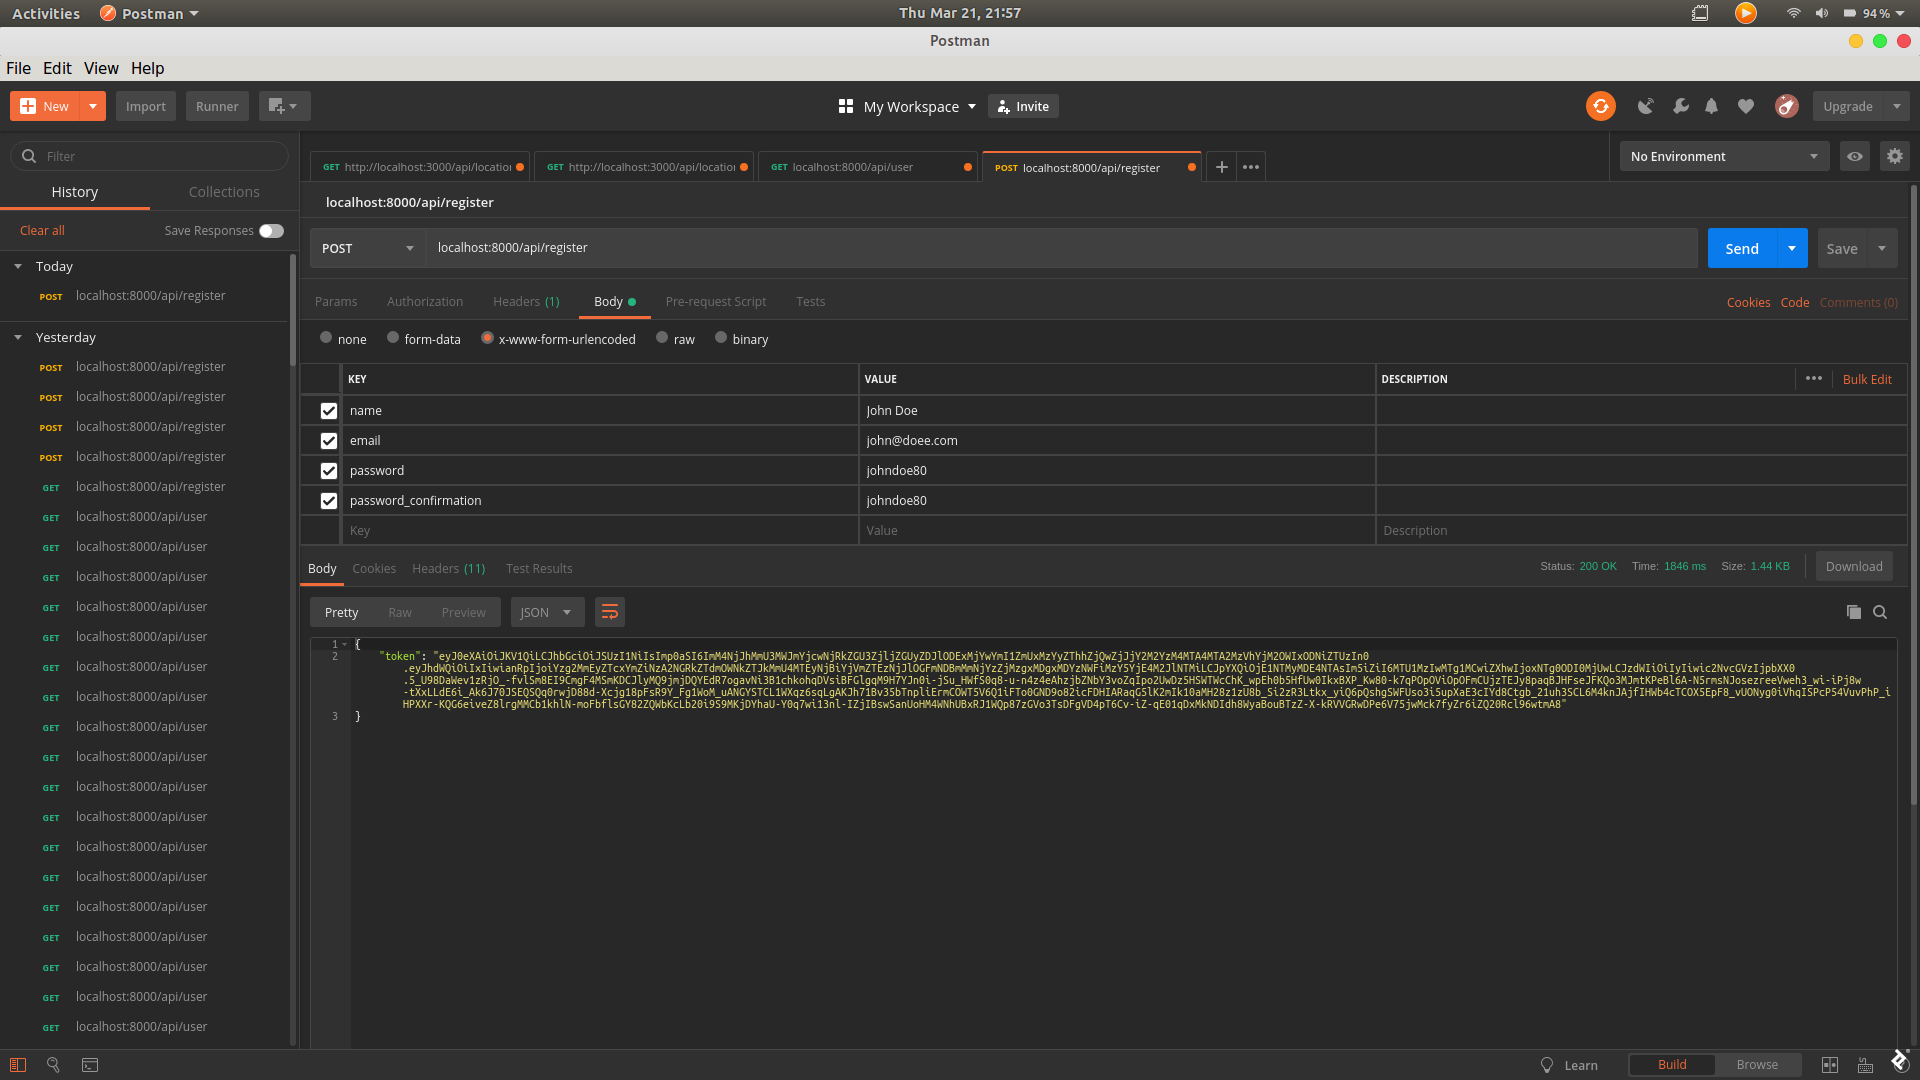 A screenshot of sending a POST request to /api/register using Postman.